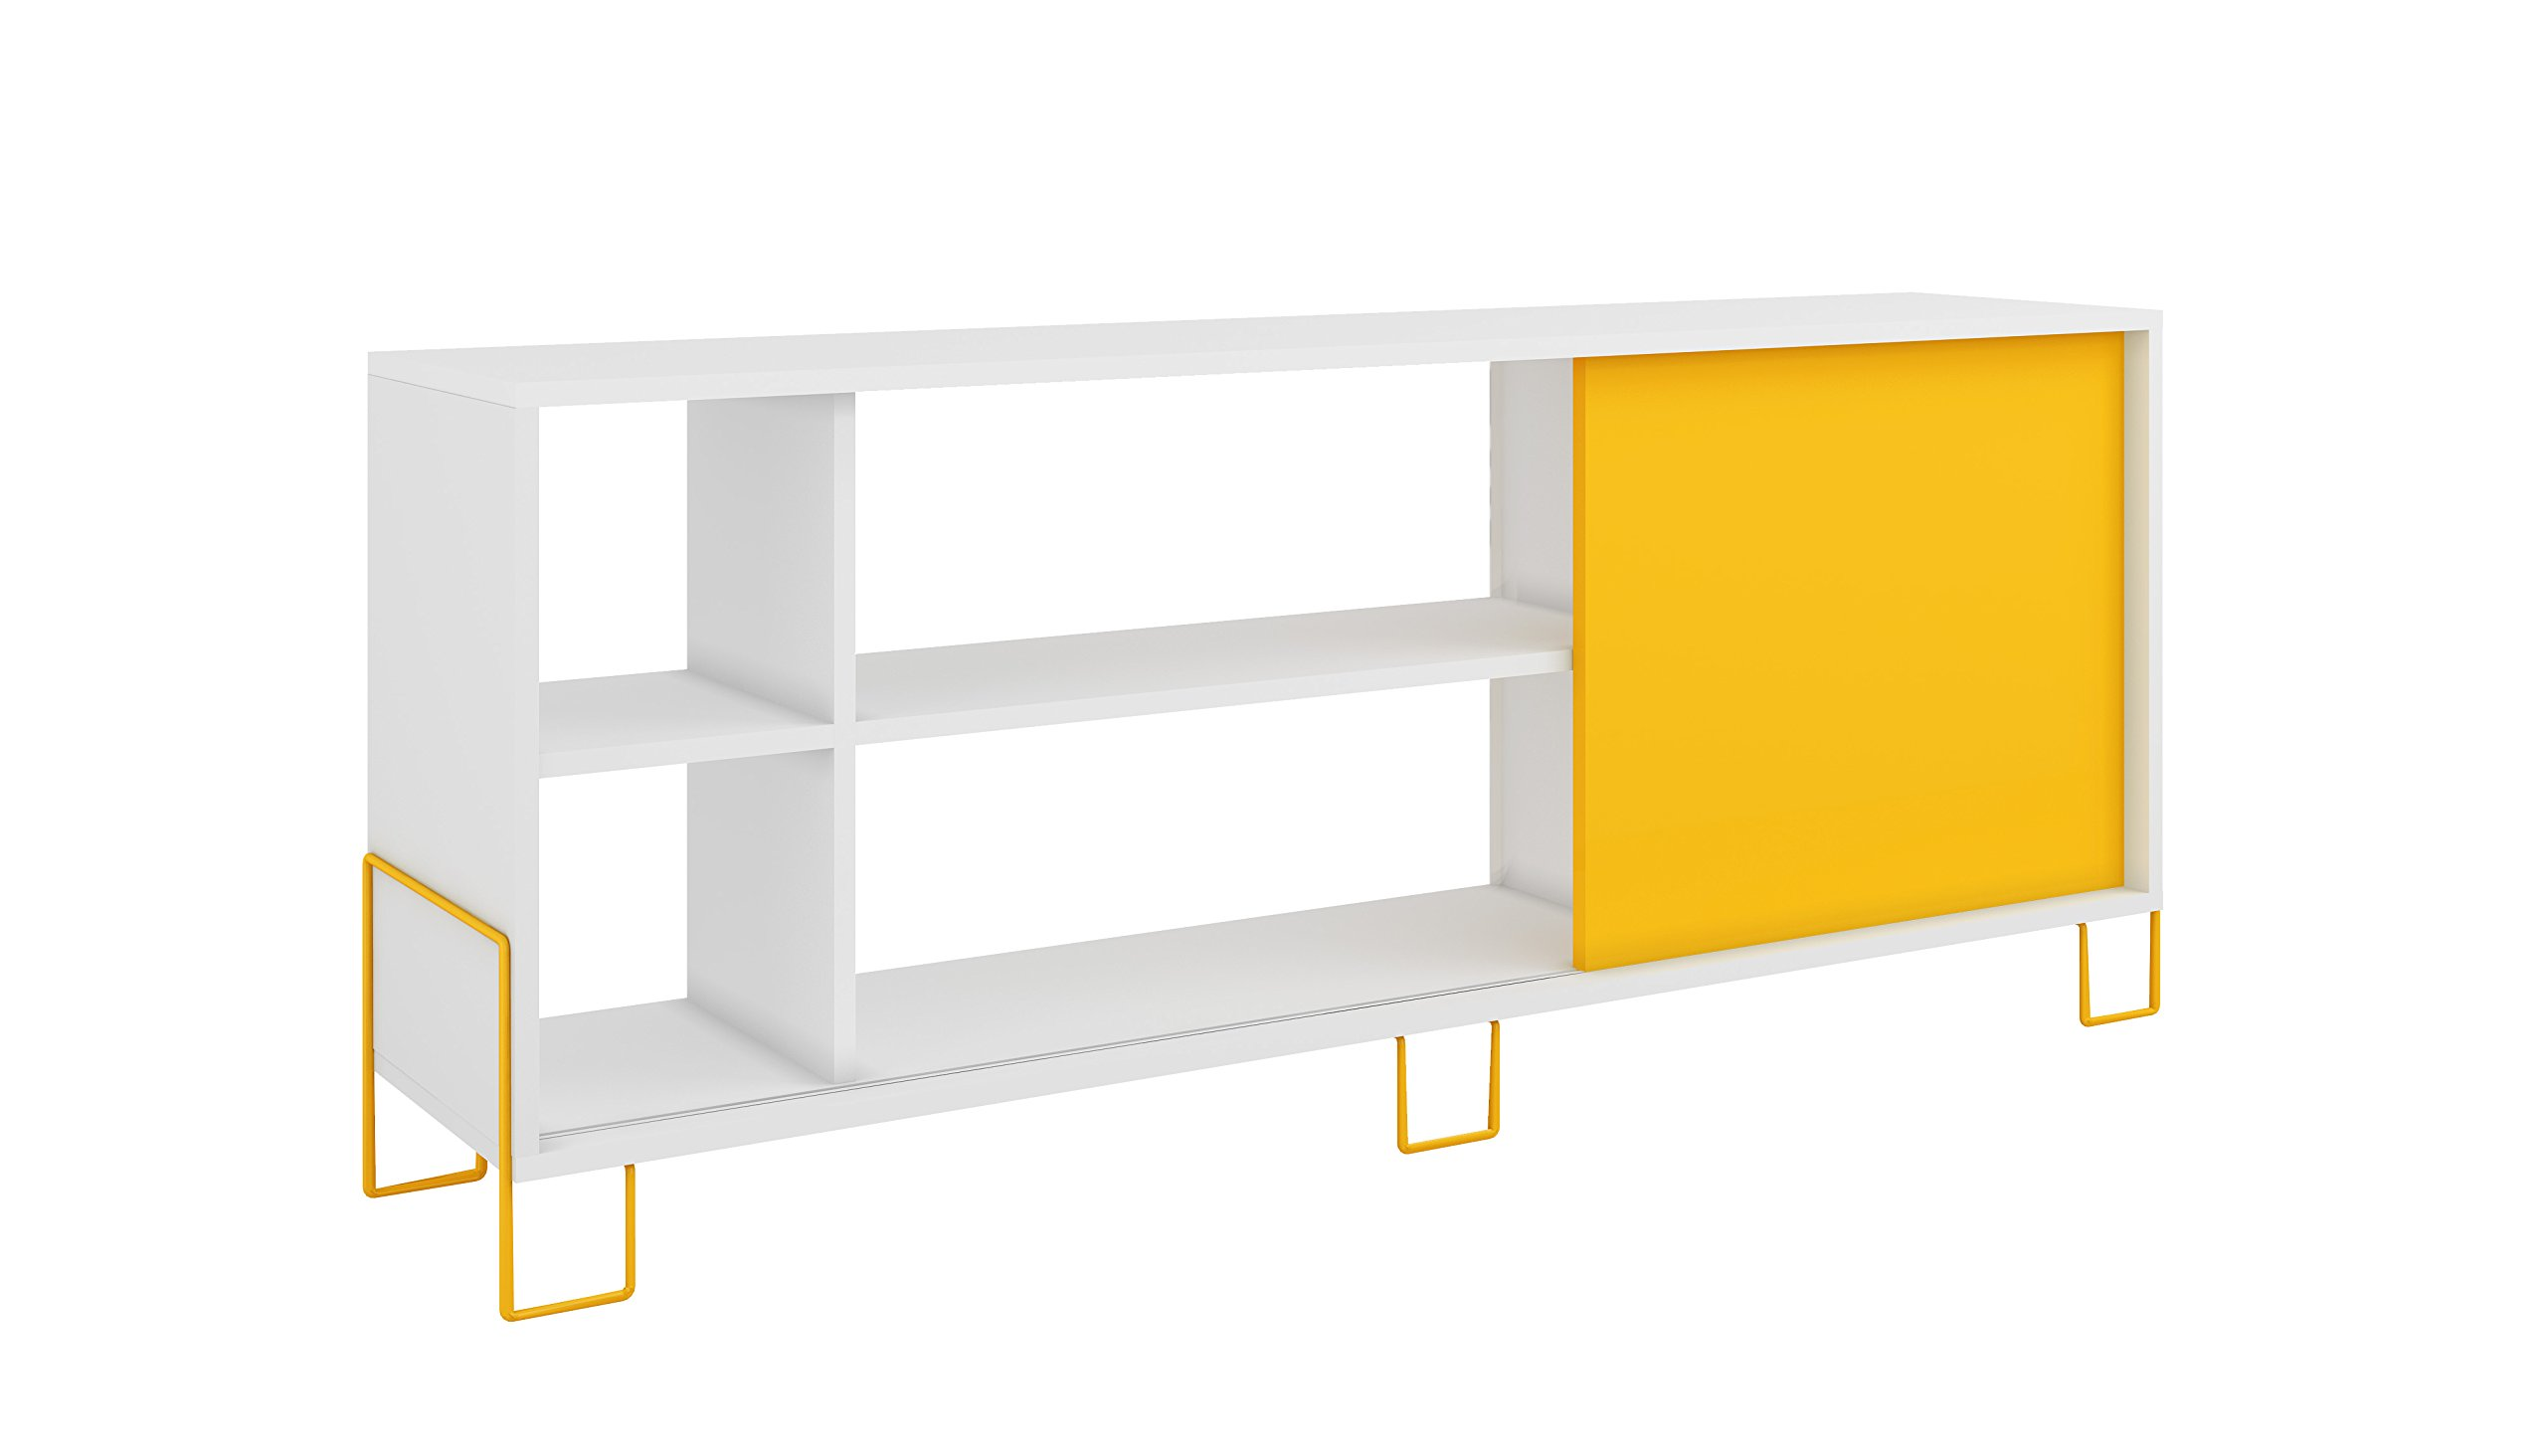 Manhattan Comfort Nacka TV Stand 2.0 Collection Modern Free Standing Flat Screen TV Stand with Storage Compartments Includes 5 Shelves and 1 Sliding Door, White Frame with Yellow Door and Base